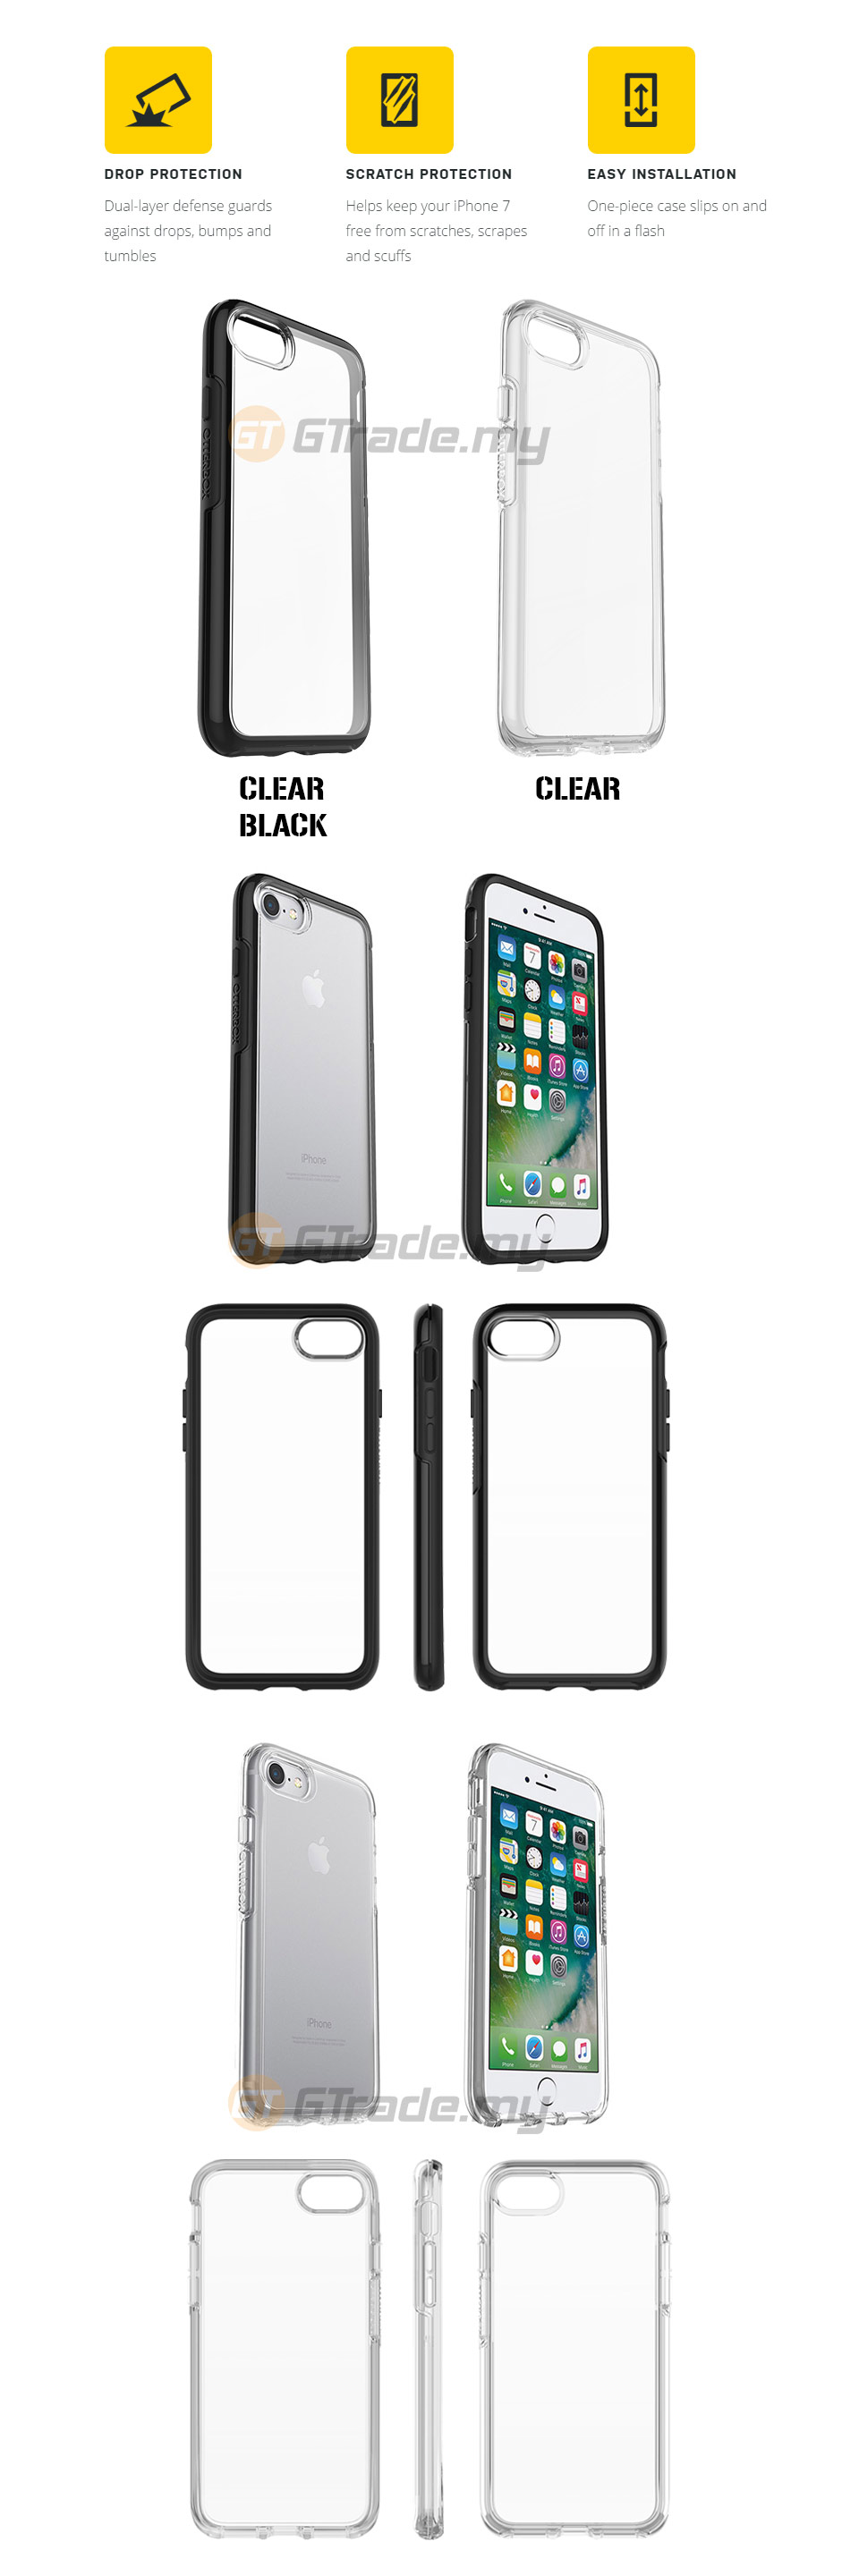 otterbox-symmetry-case-apple-iphone-7-p